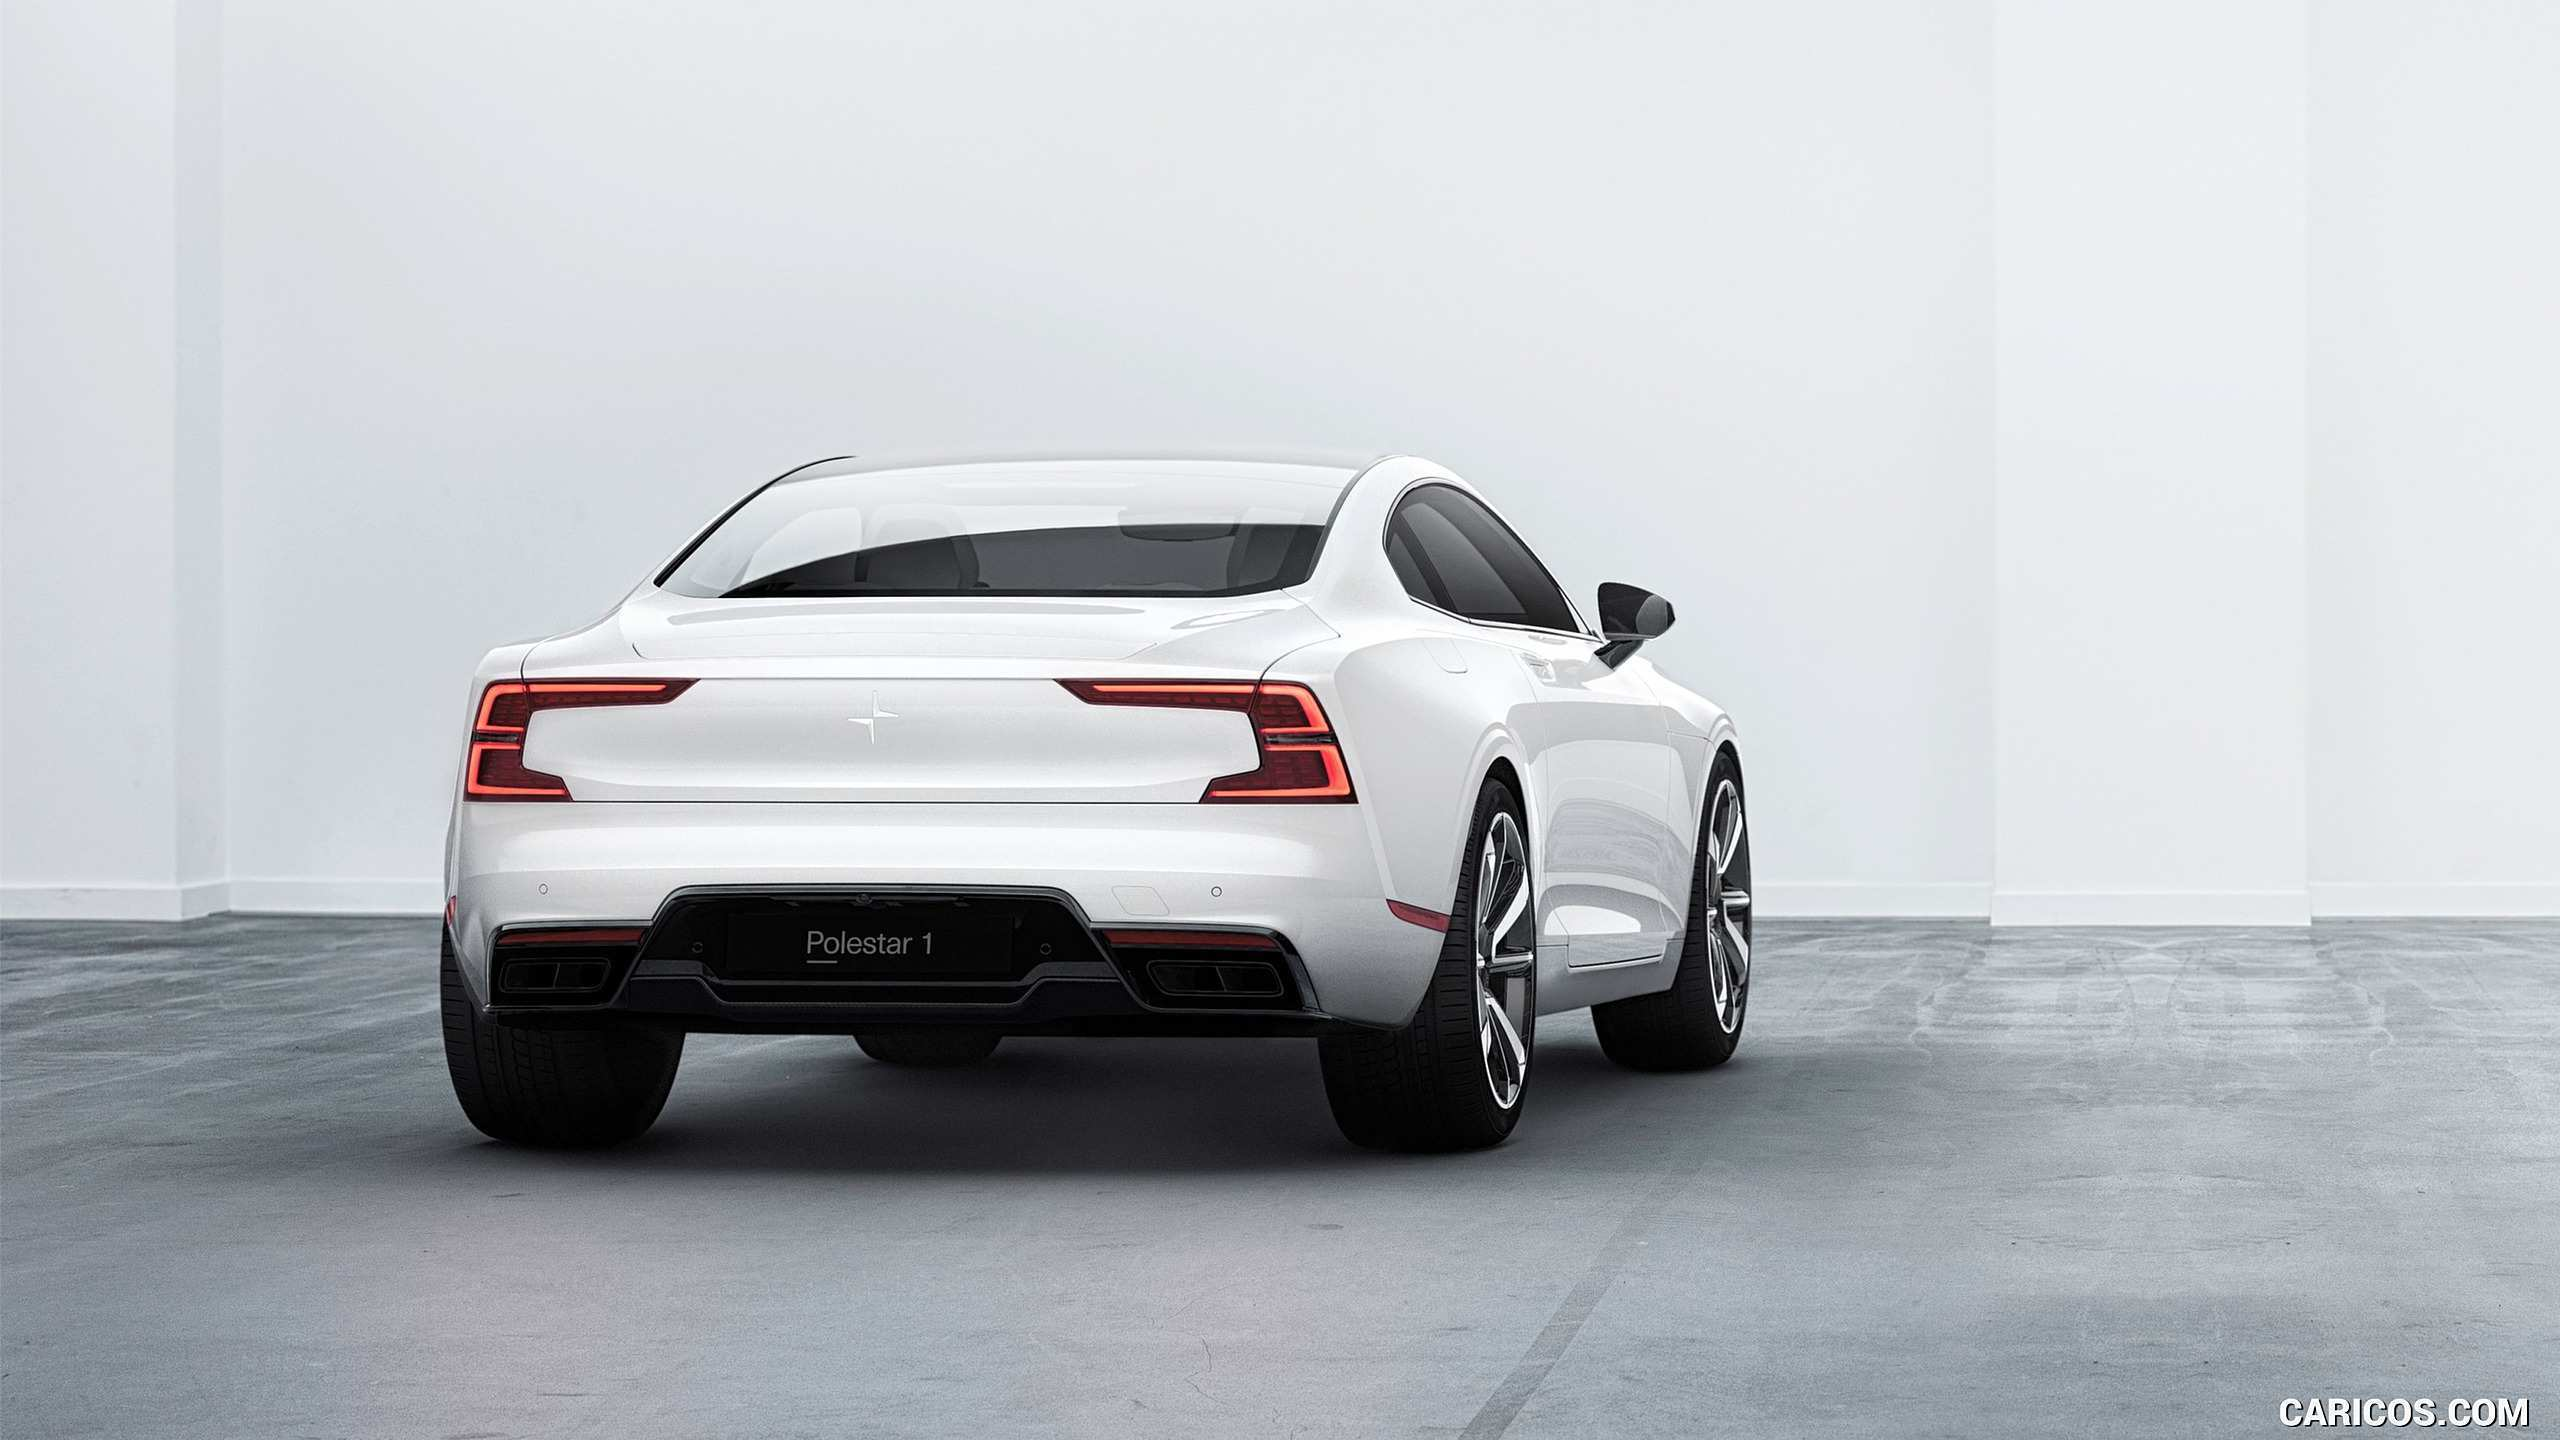 73 New 2020 Volvo Polestar 1 Research New for 2020 Volvo Polestar 1